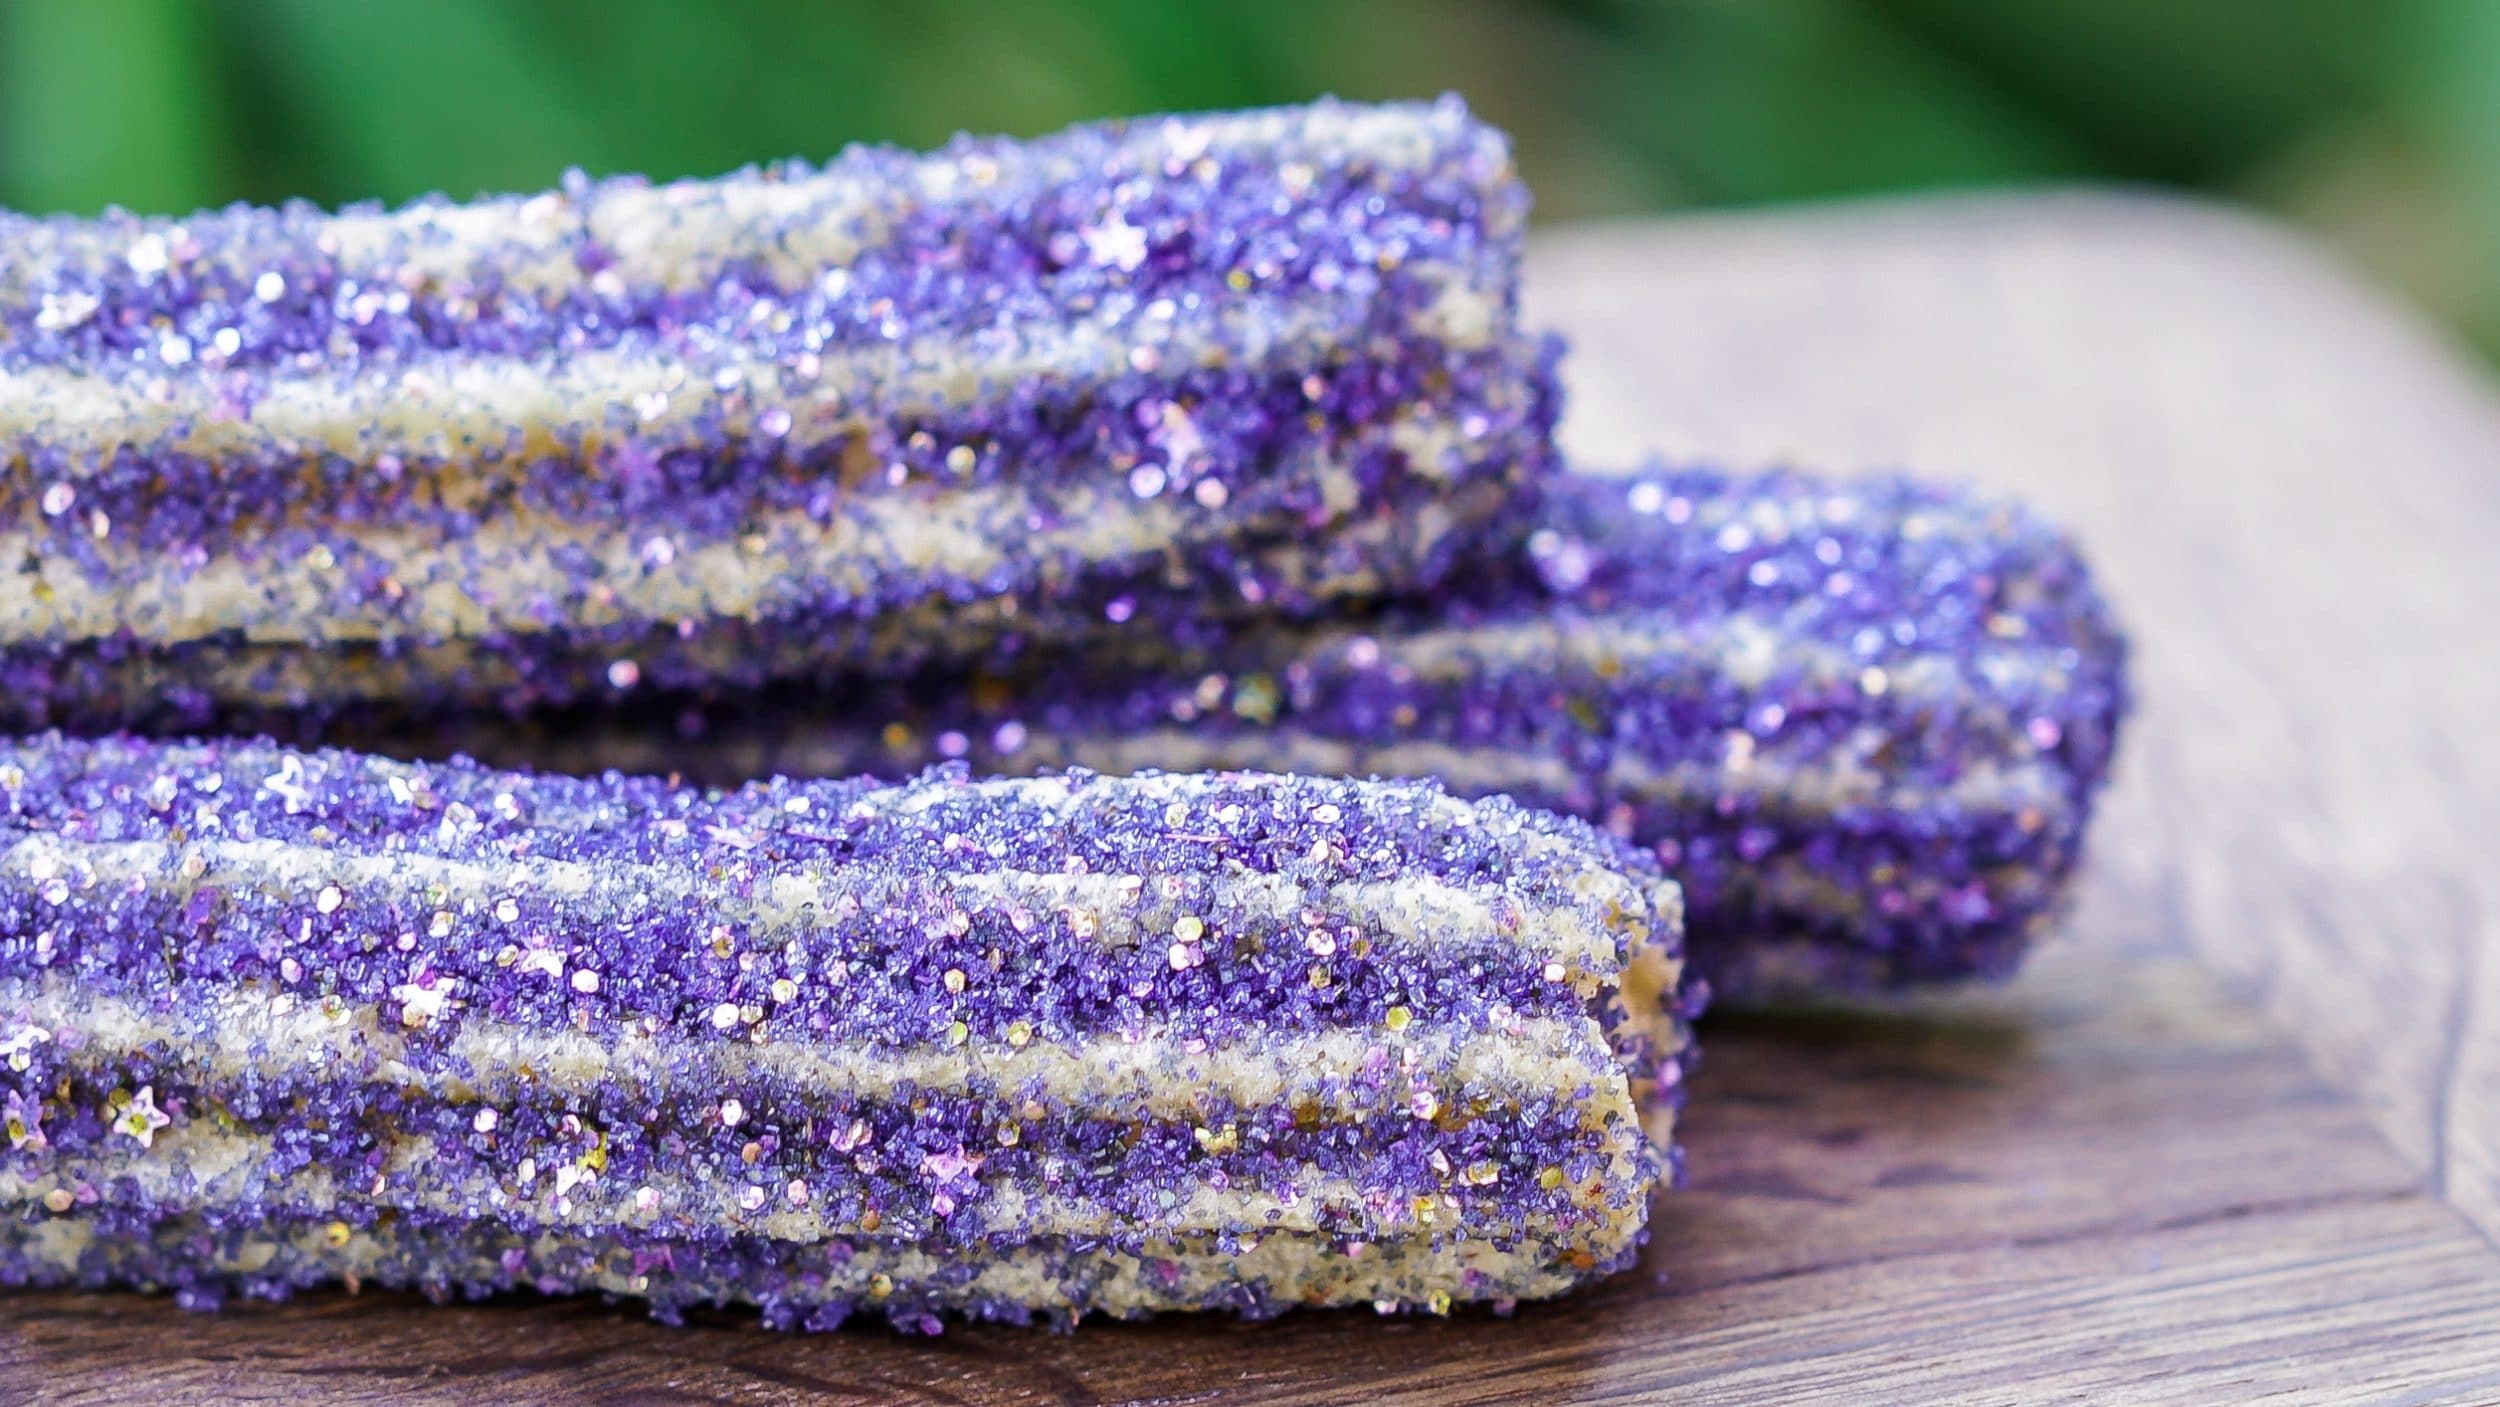 Purple Disneyland Halloween churros will be sold at snack carts around the park.